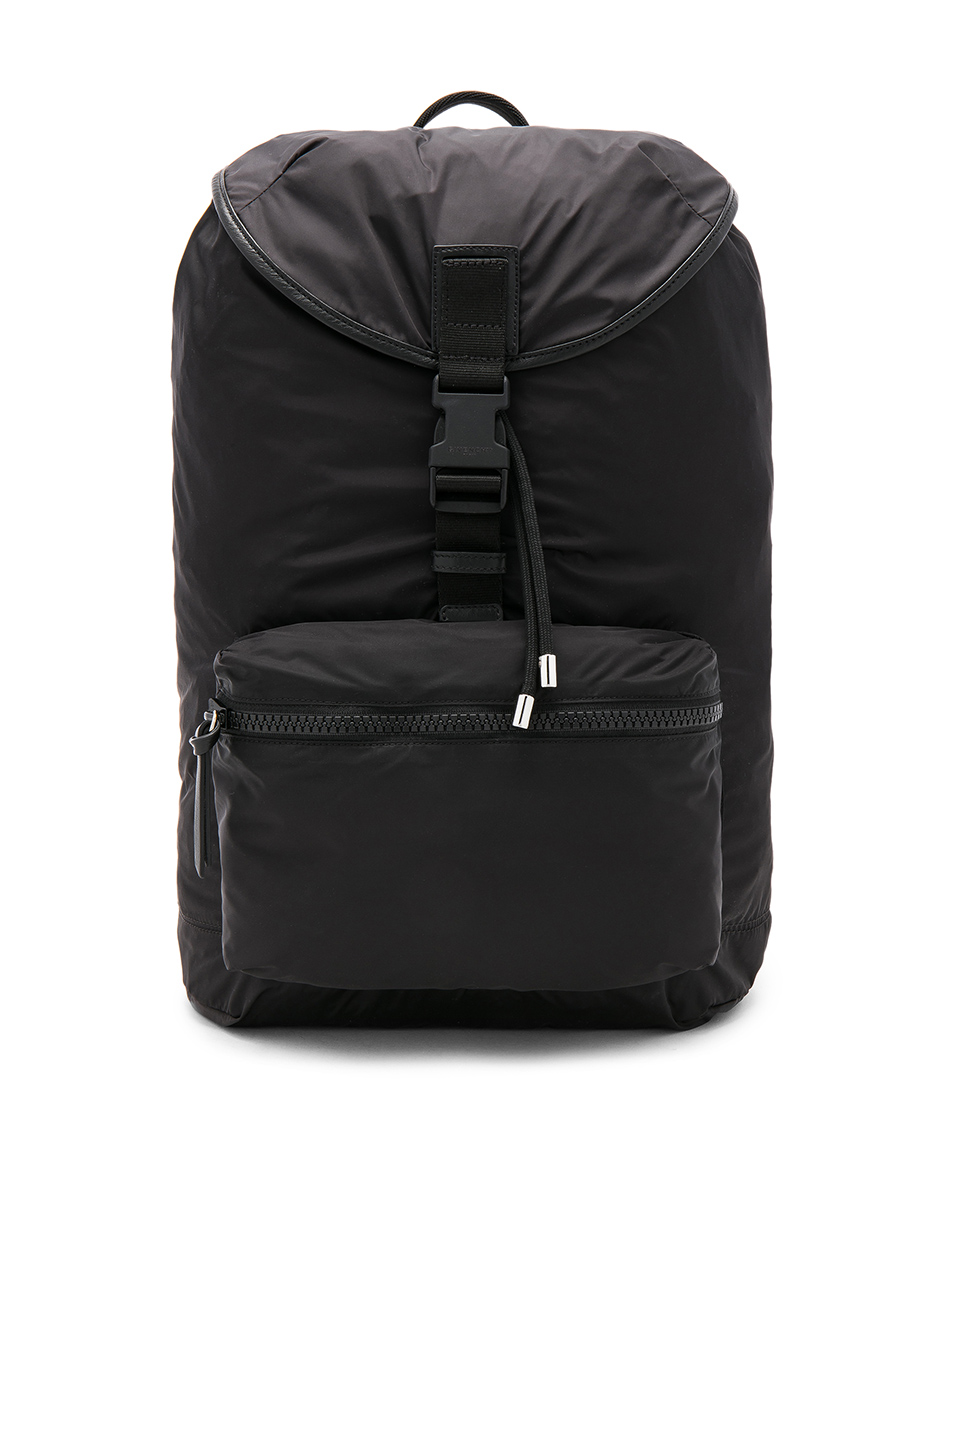 c166428963 Buy Original Givenchy Fold Into Bag Backpack at Indonesia